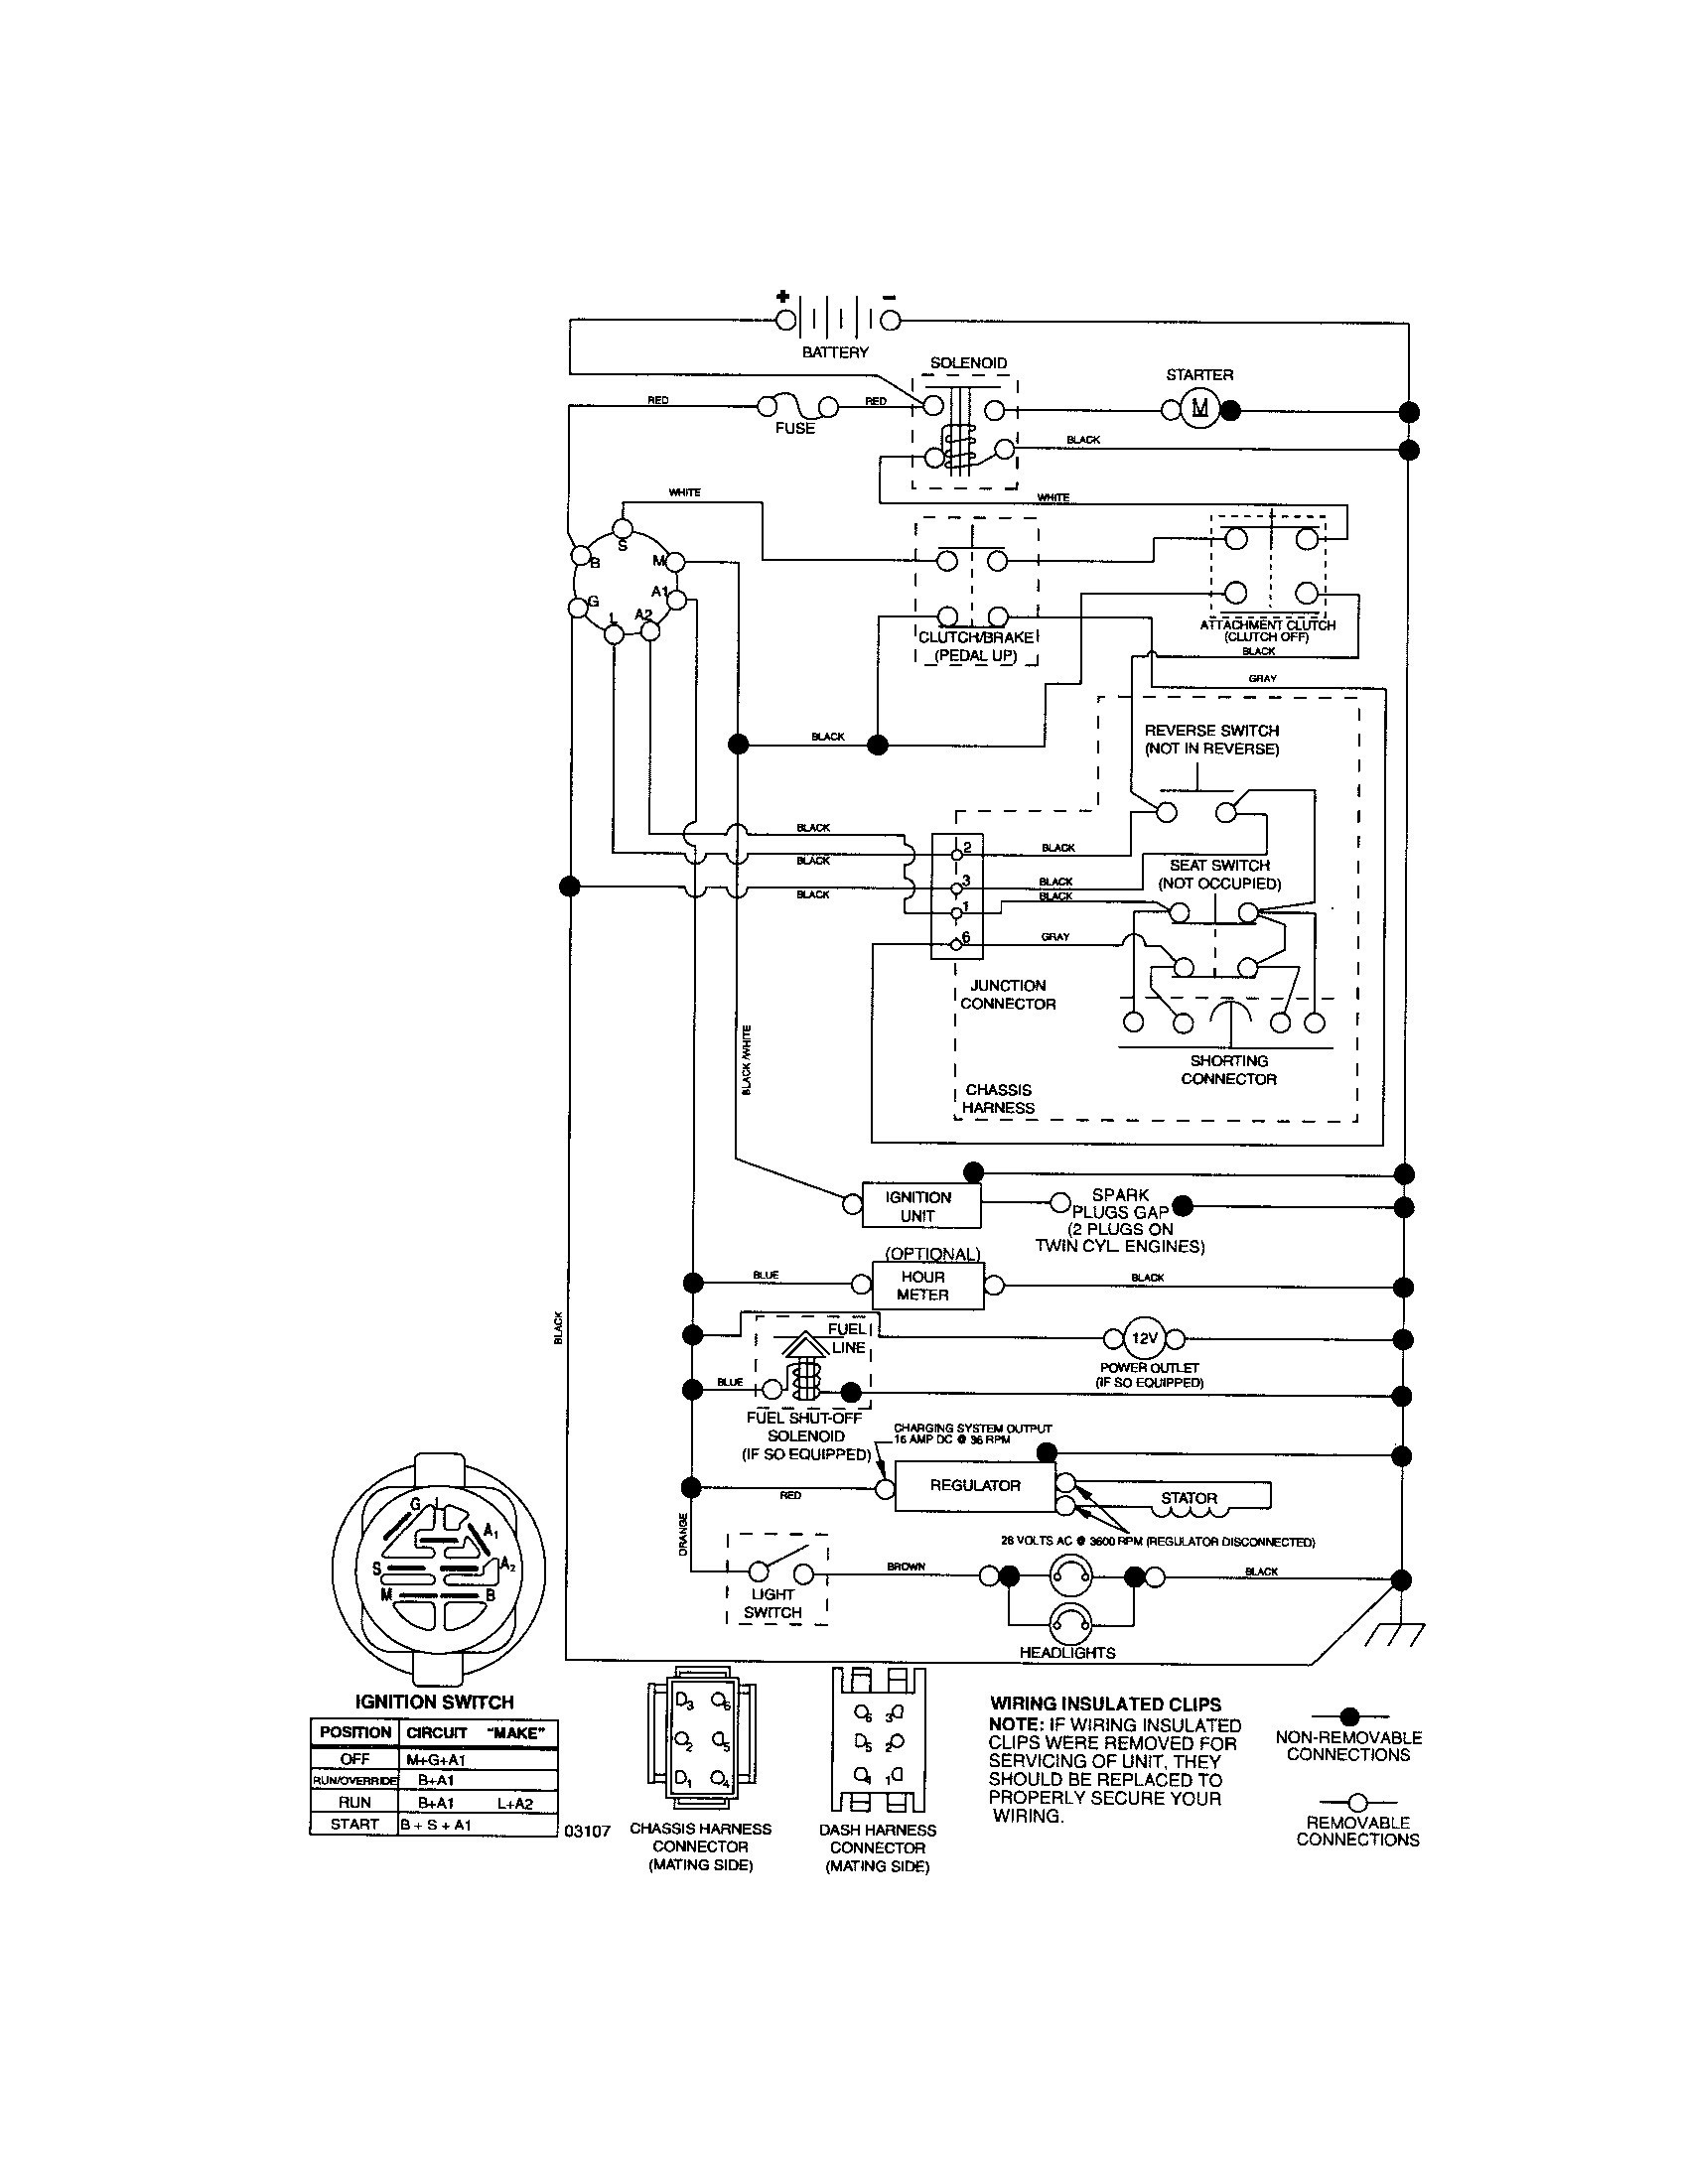 hight resolution of sears lawn tractor wiring diagram wiring diagram for yardman riding mower fresh craftsman riding mower